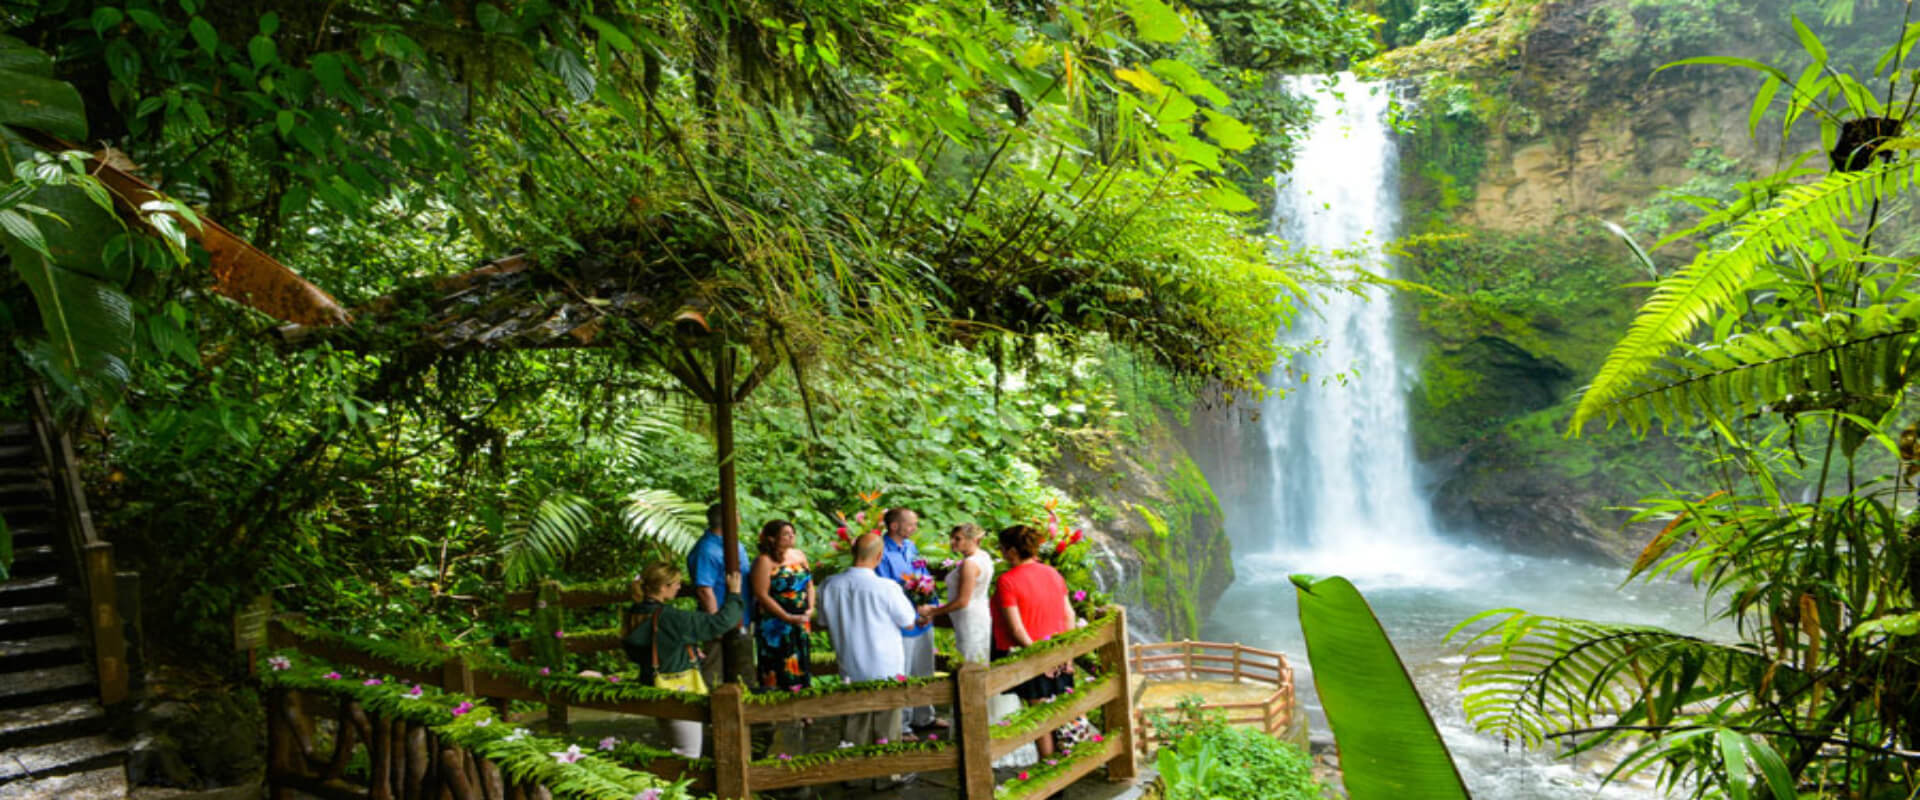 La Paz Waterfall Gardens Tour  | Costa Rica Jade Tours